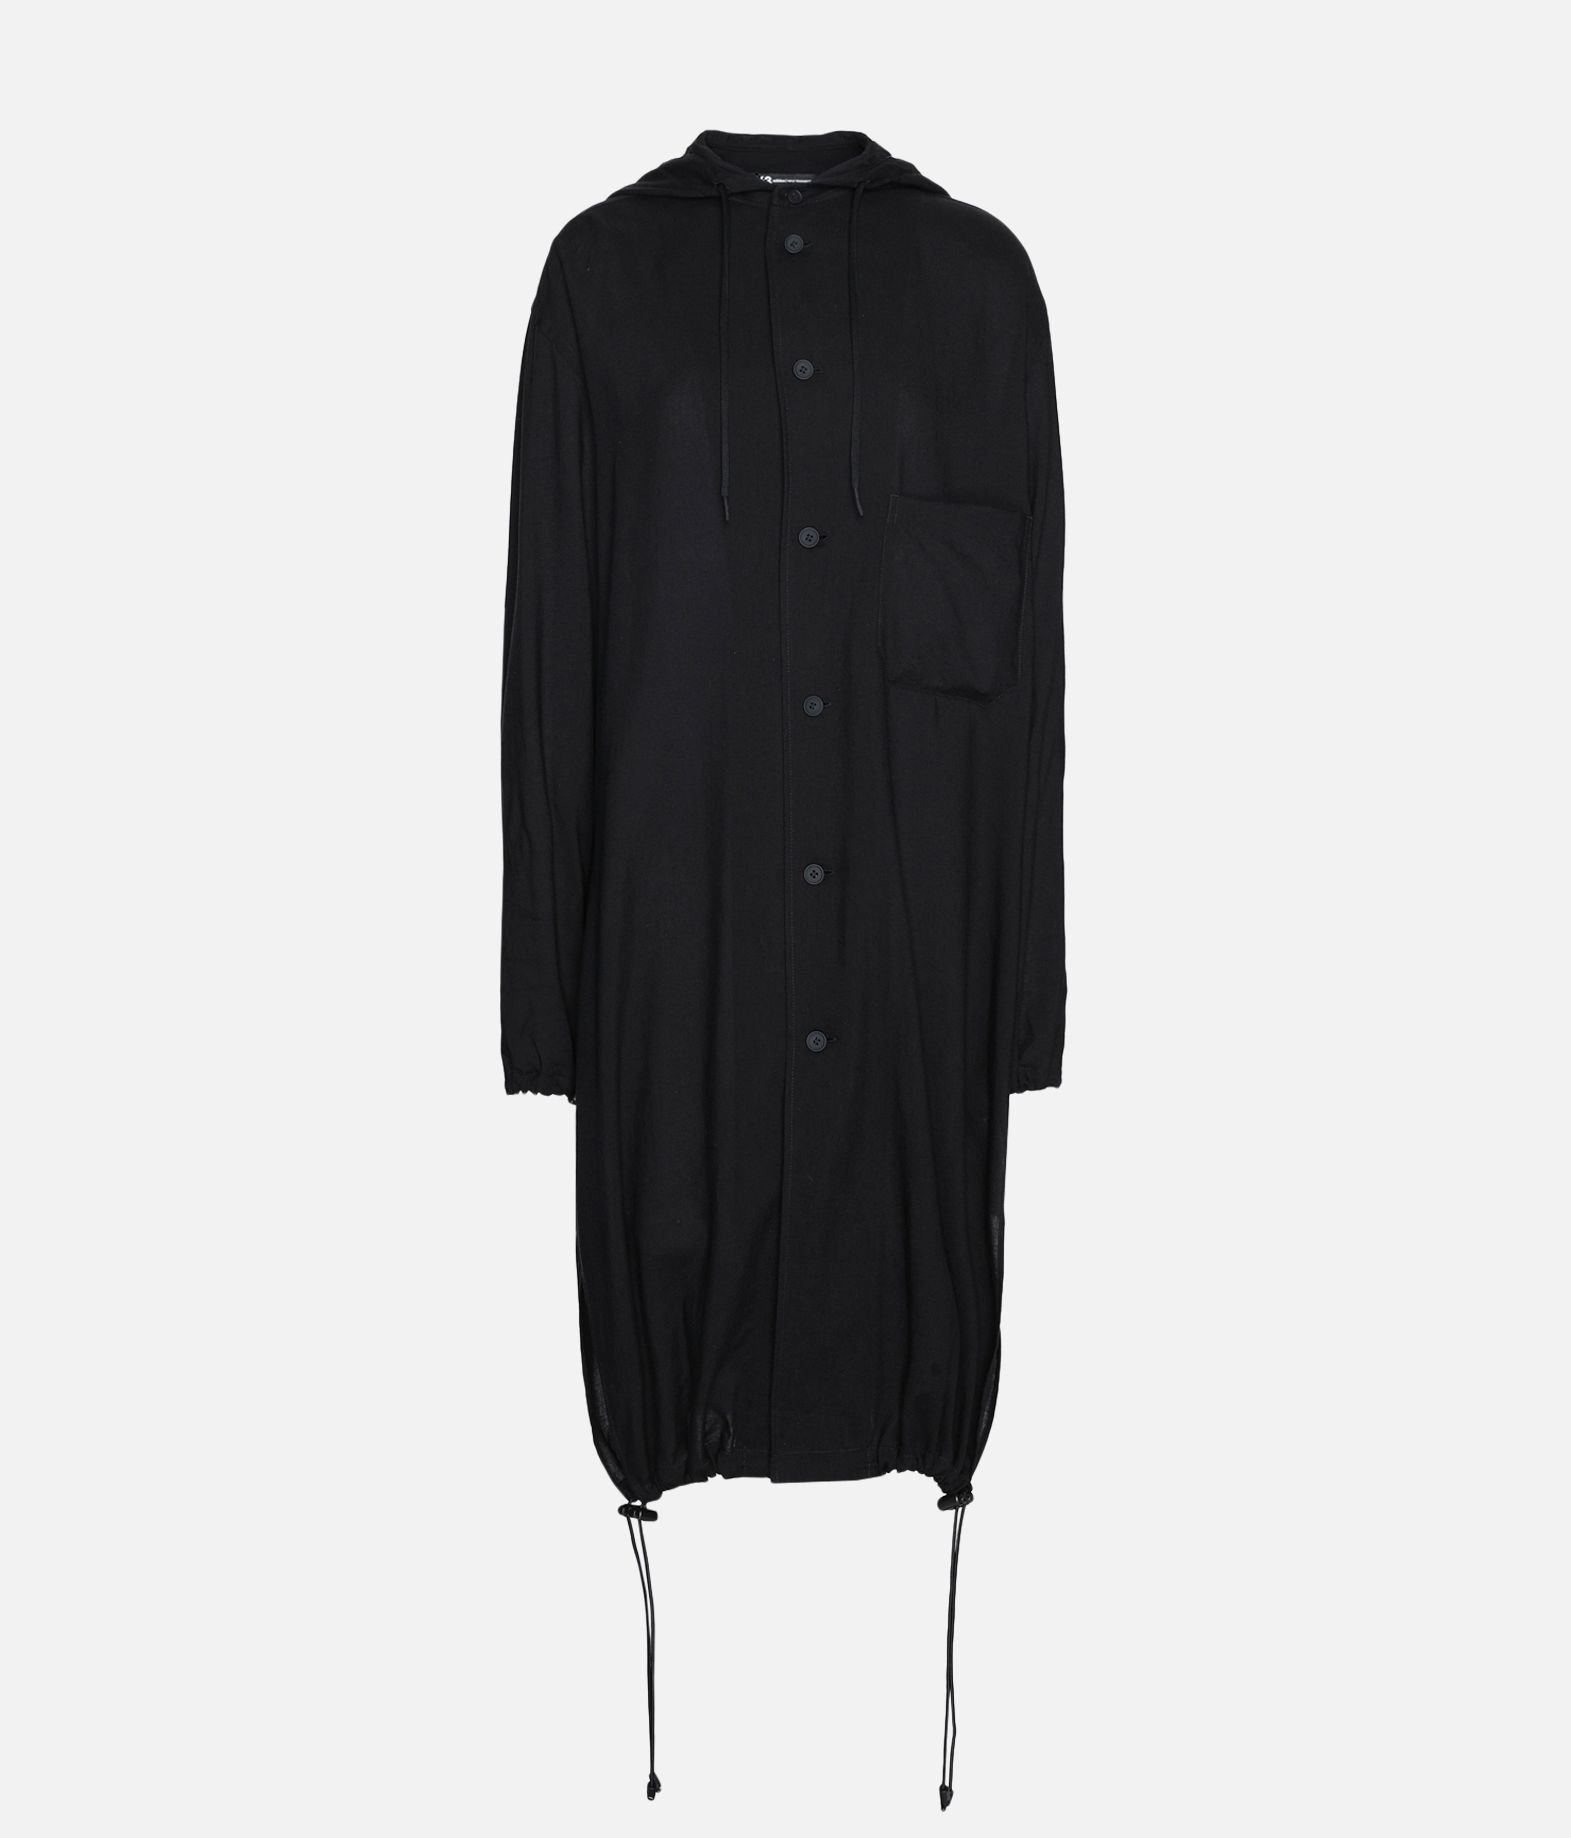 Y-3 Y-3 Hooded Long Shirt Long sleeve shirt Woman f